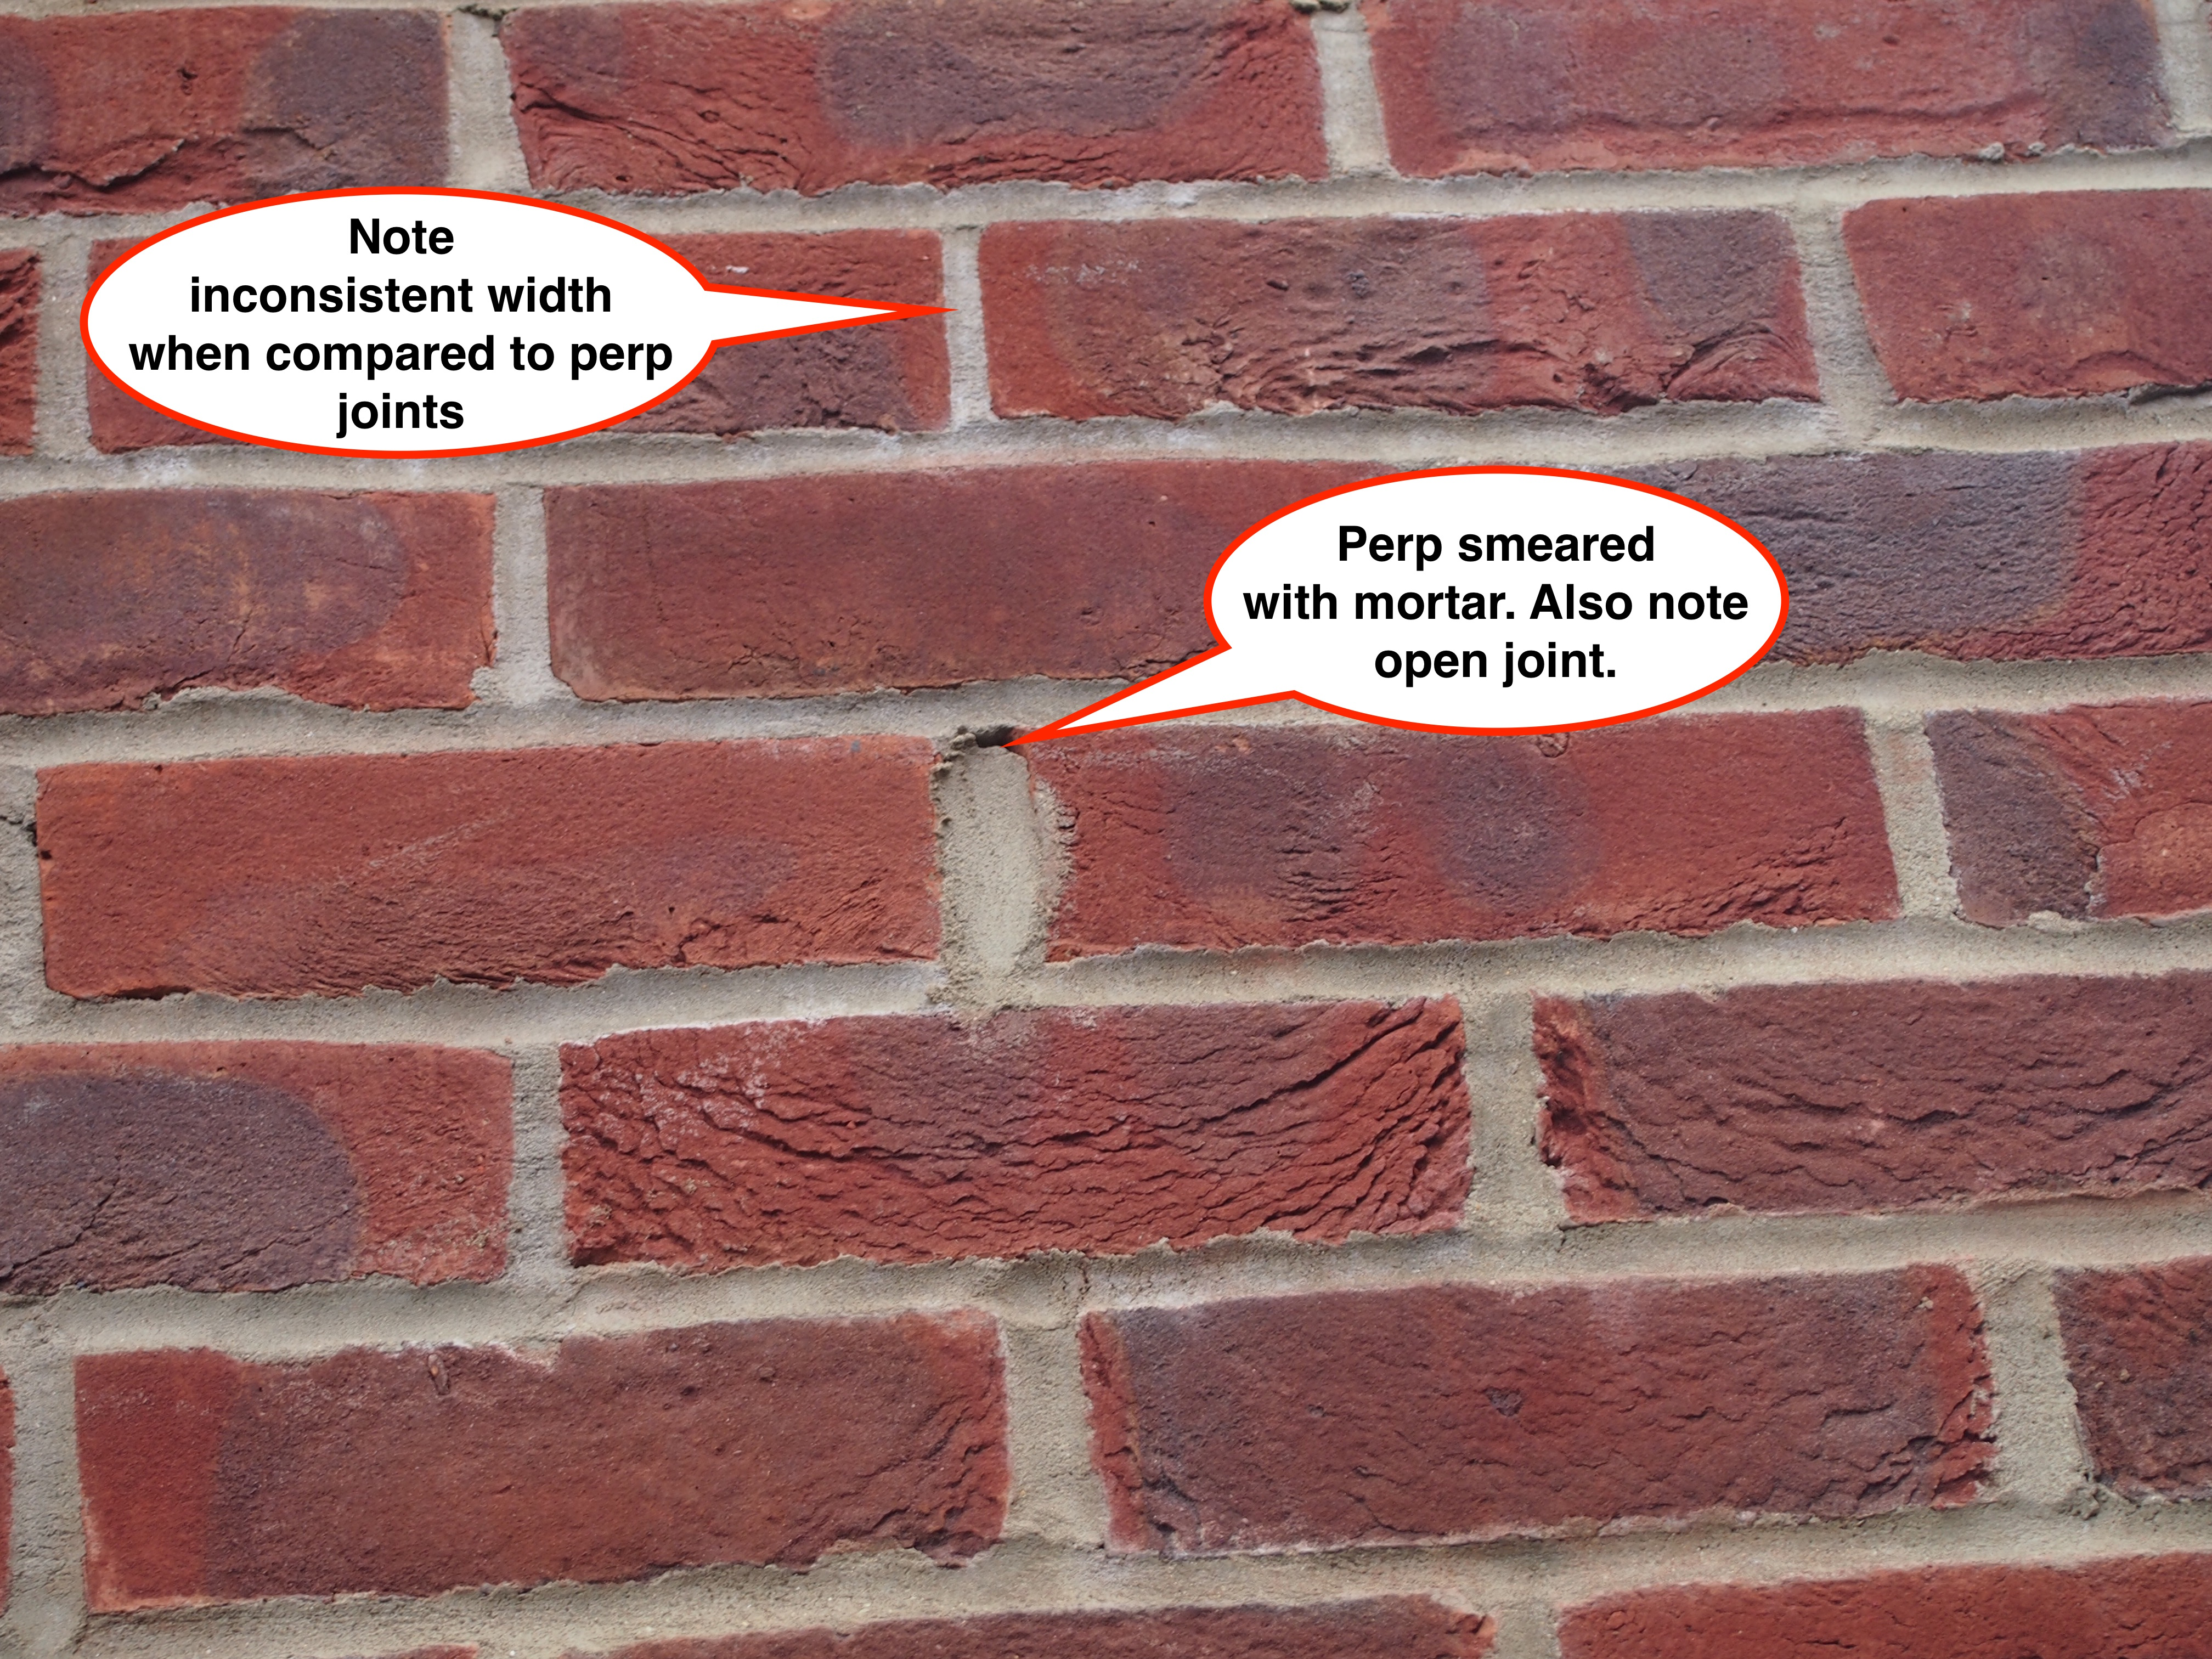 Inconsistent mortar joints